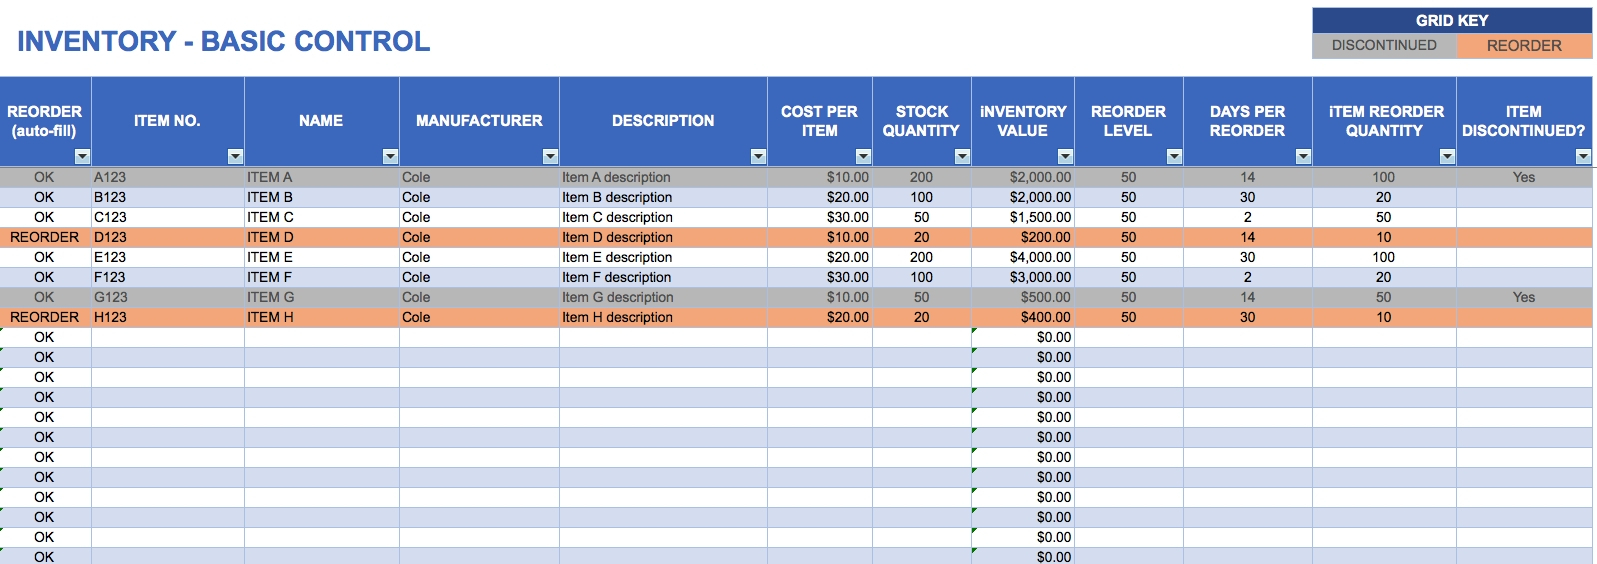 Inventory Spreadsheet Template Excel Product Tracking Throughout Sample Inventory Tracking Spreadsheet On Google Spreadsheet With